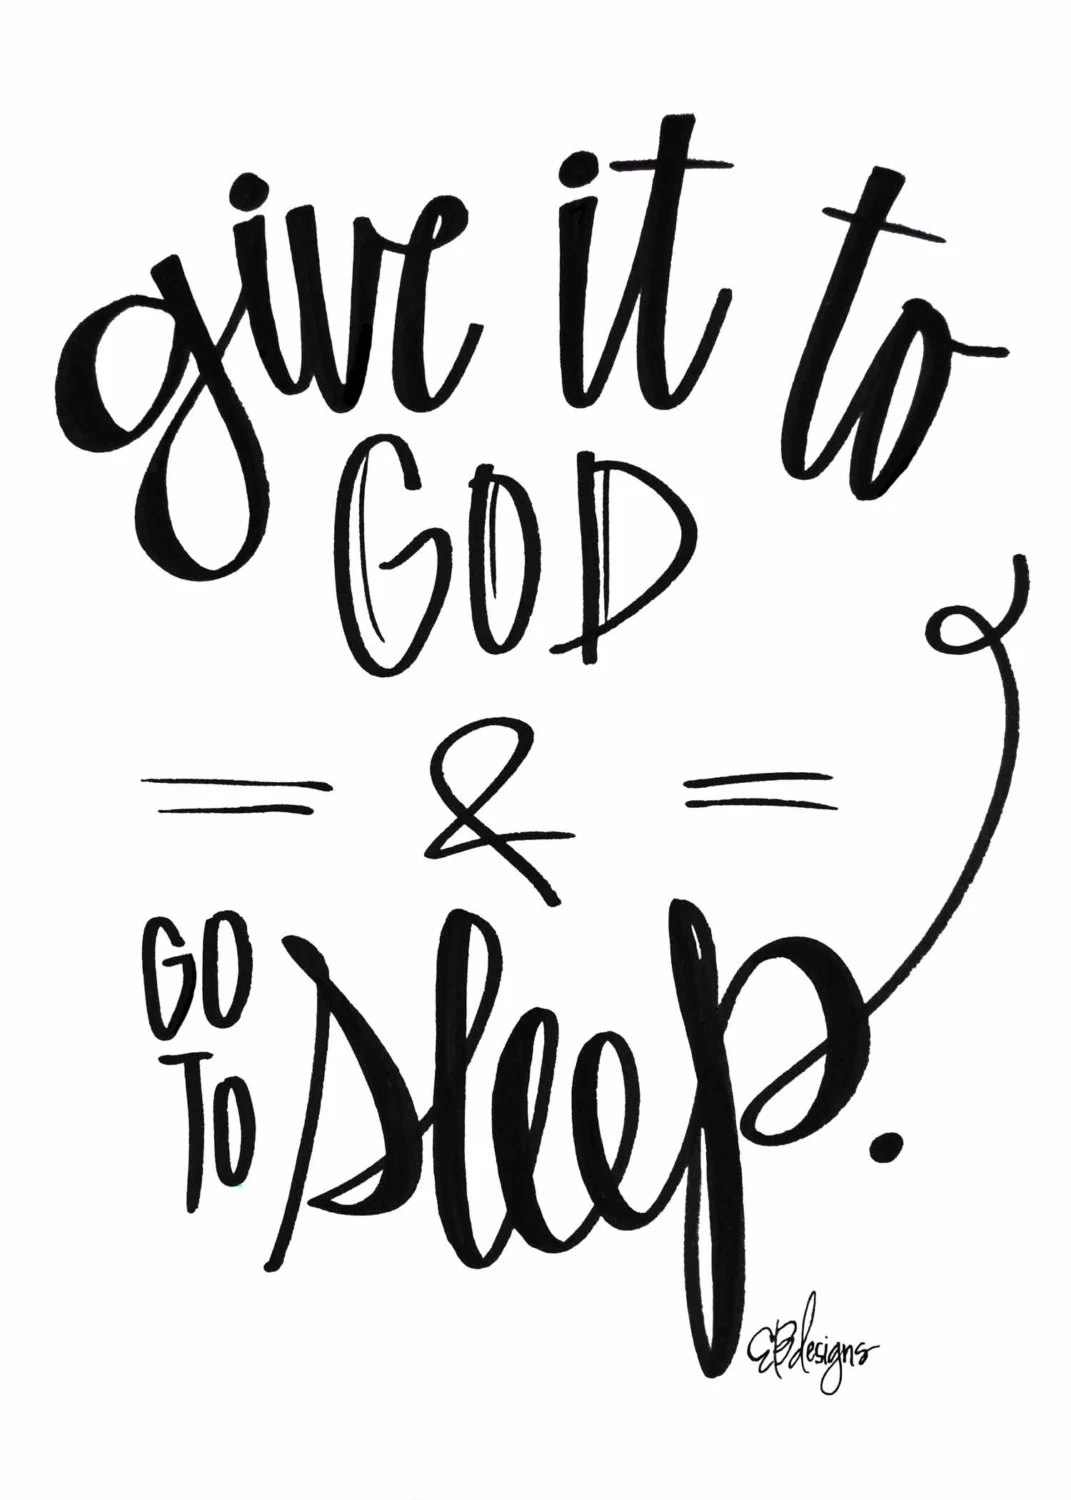 Give it to God & GO TO SLEEP.